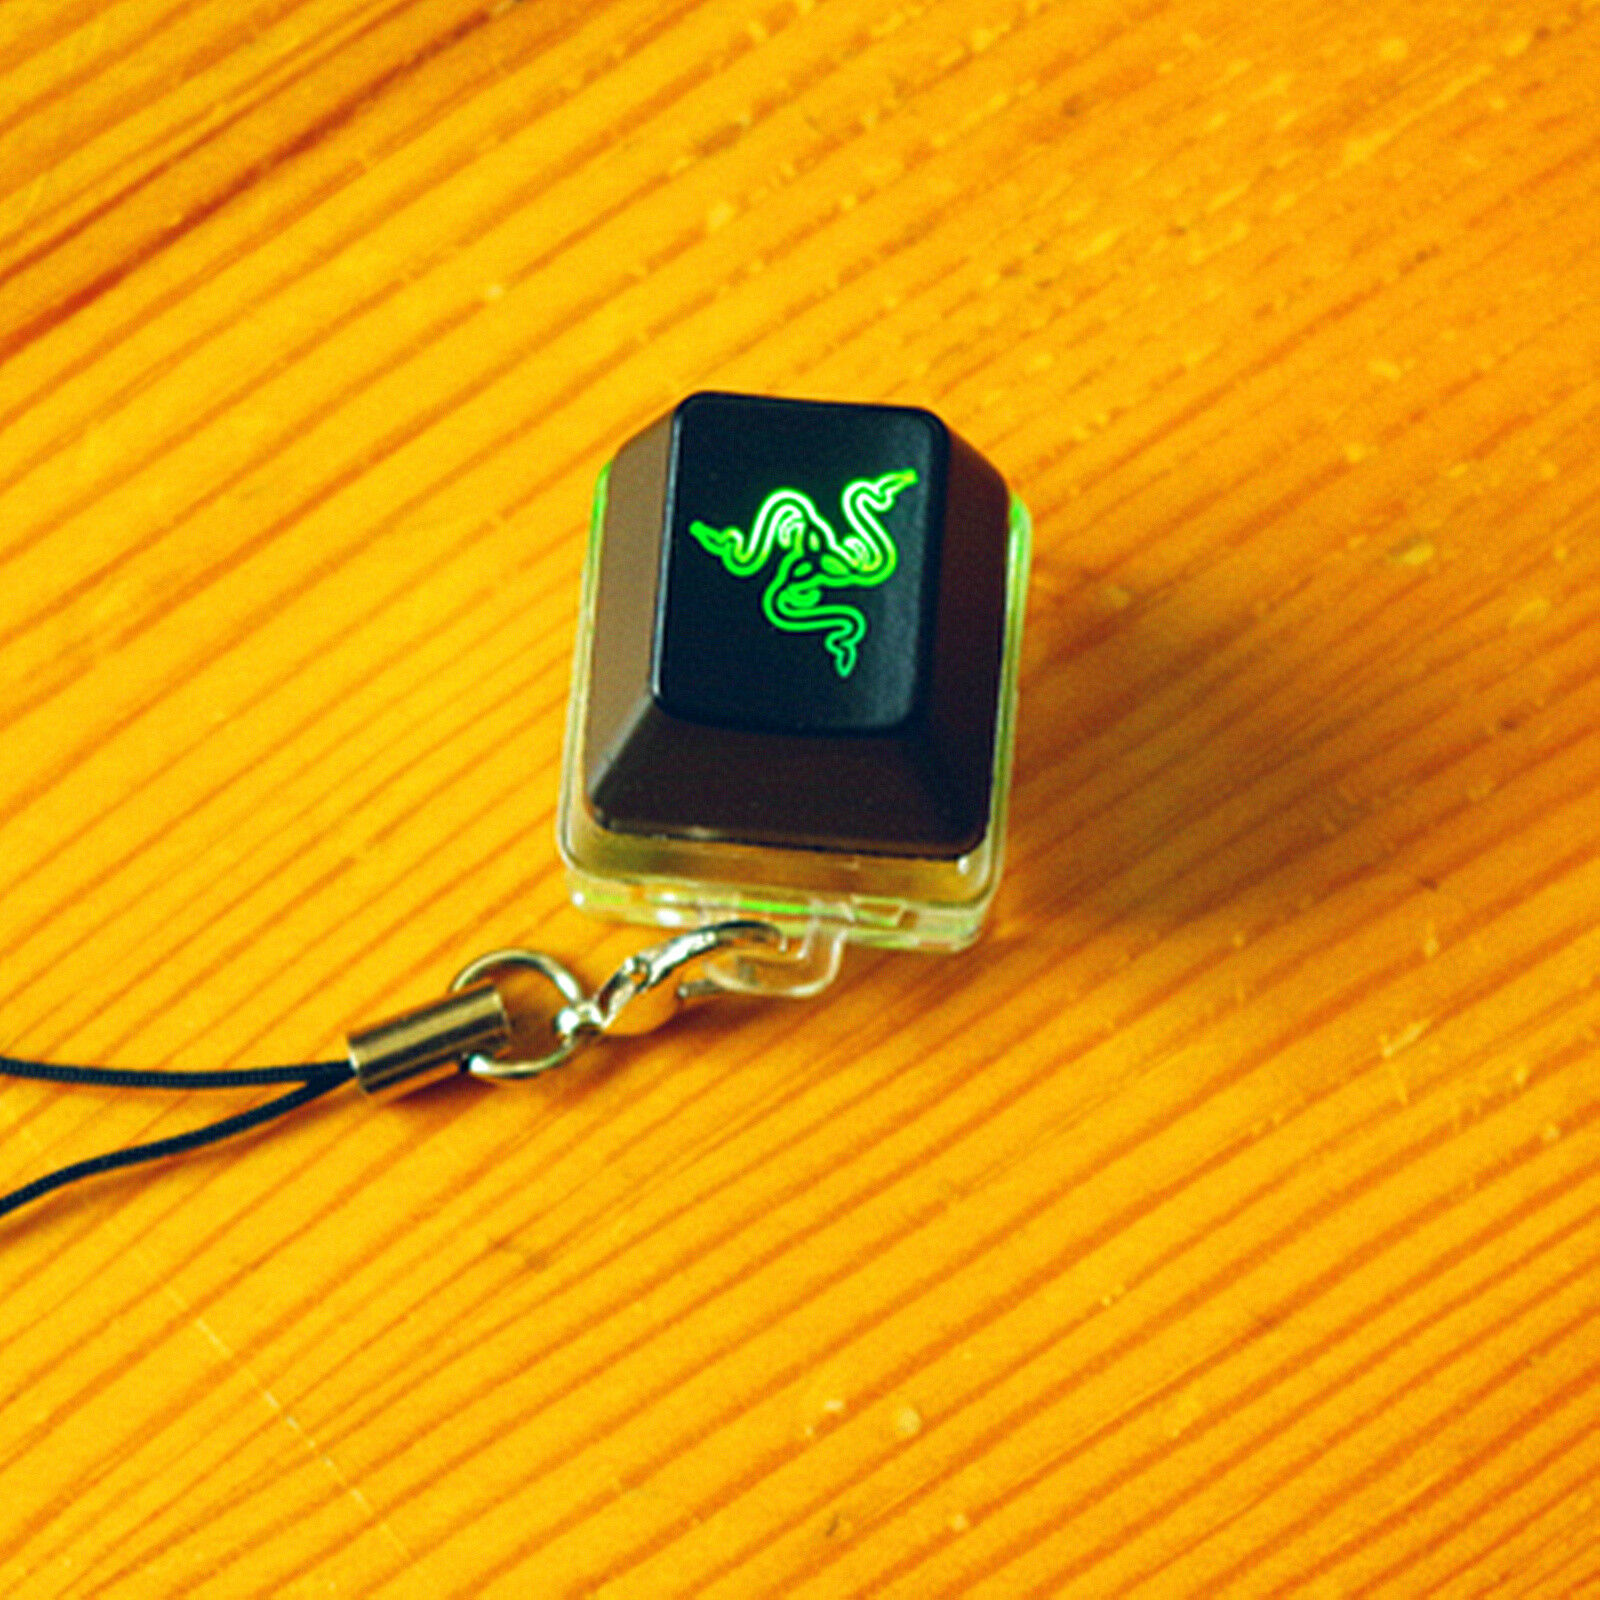 Razer OW Overwatch Keycap + Razer Green Switch Cherry MX Blue Switch Tester Kit Keychain Lighting Up